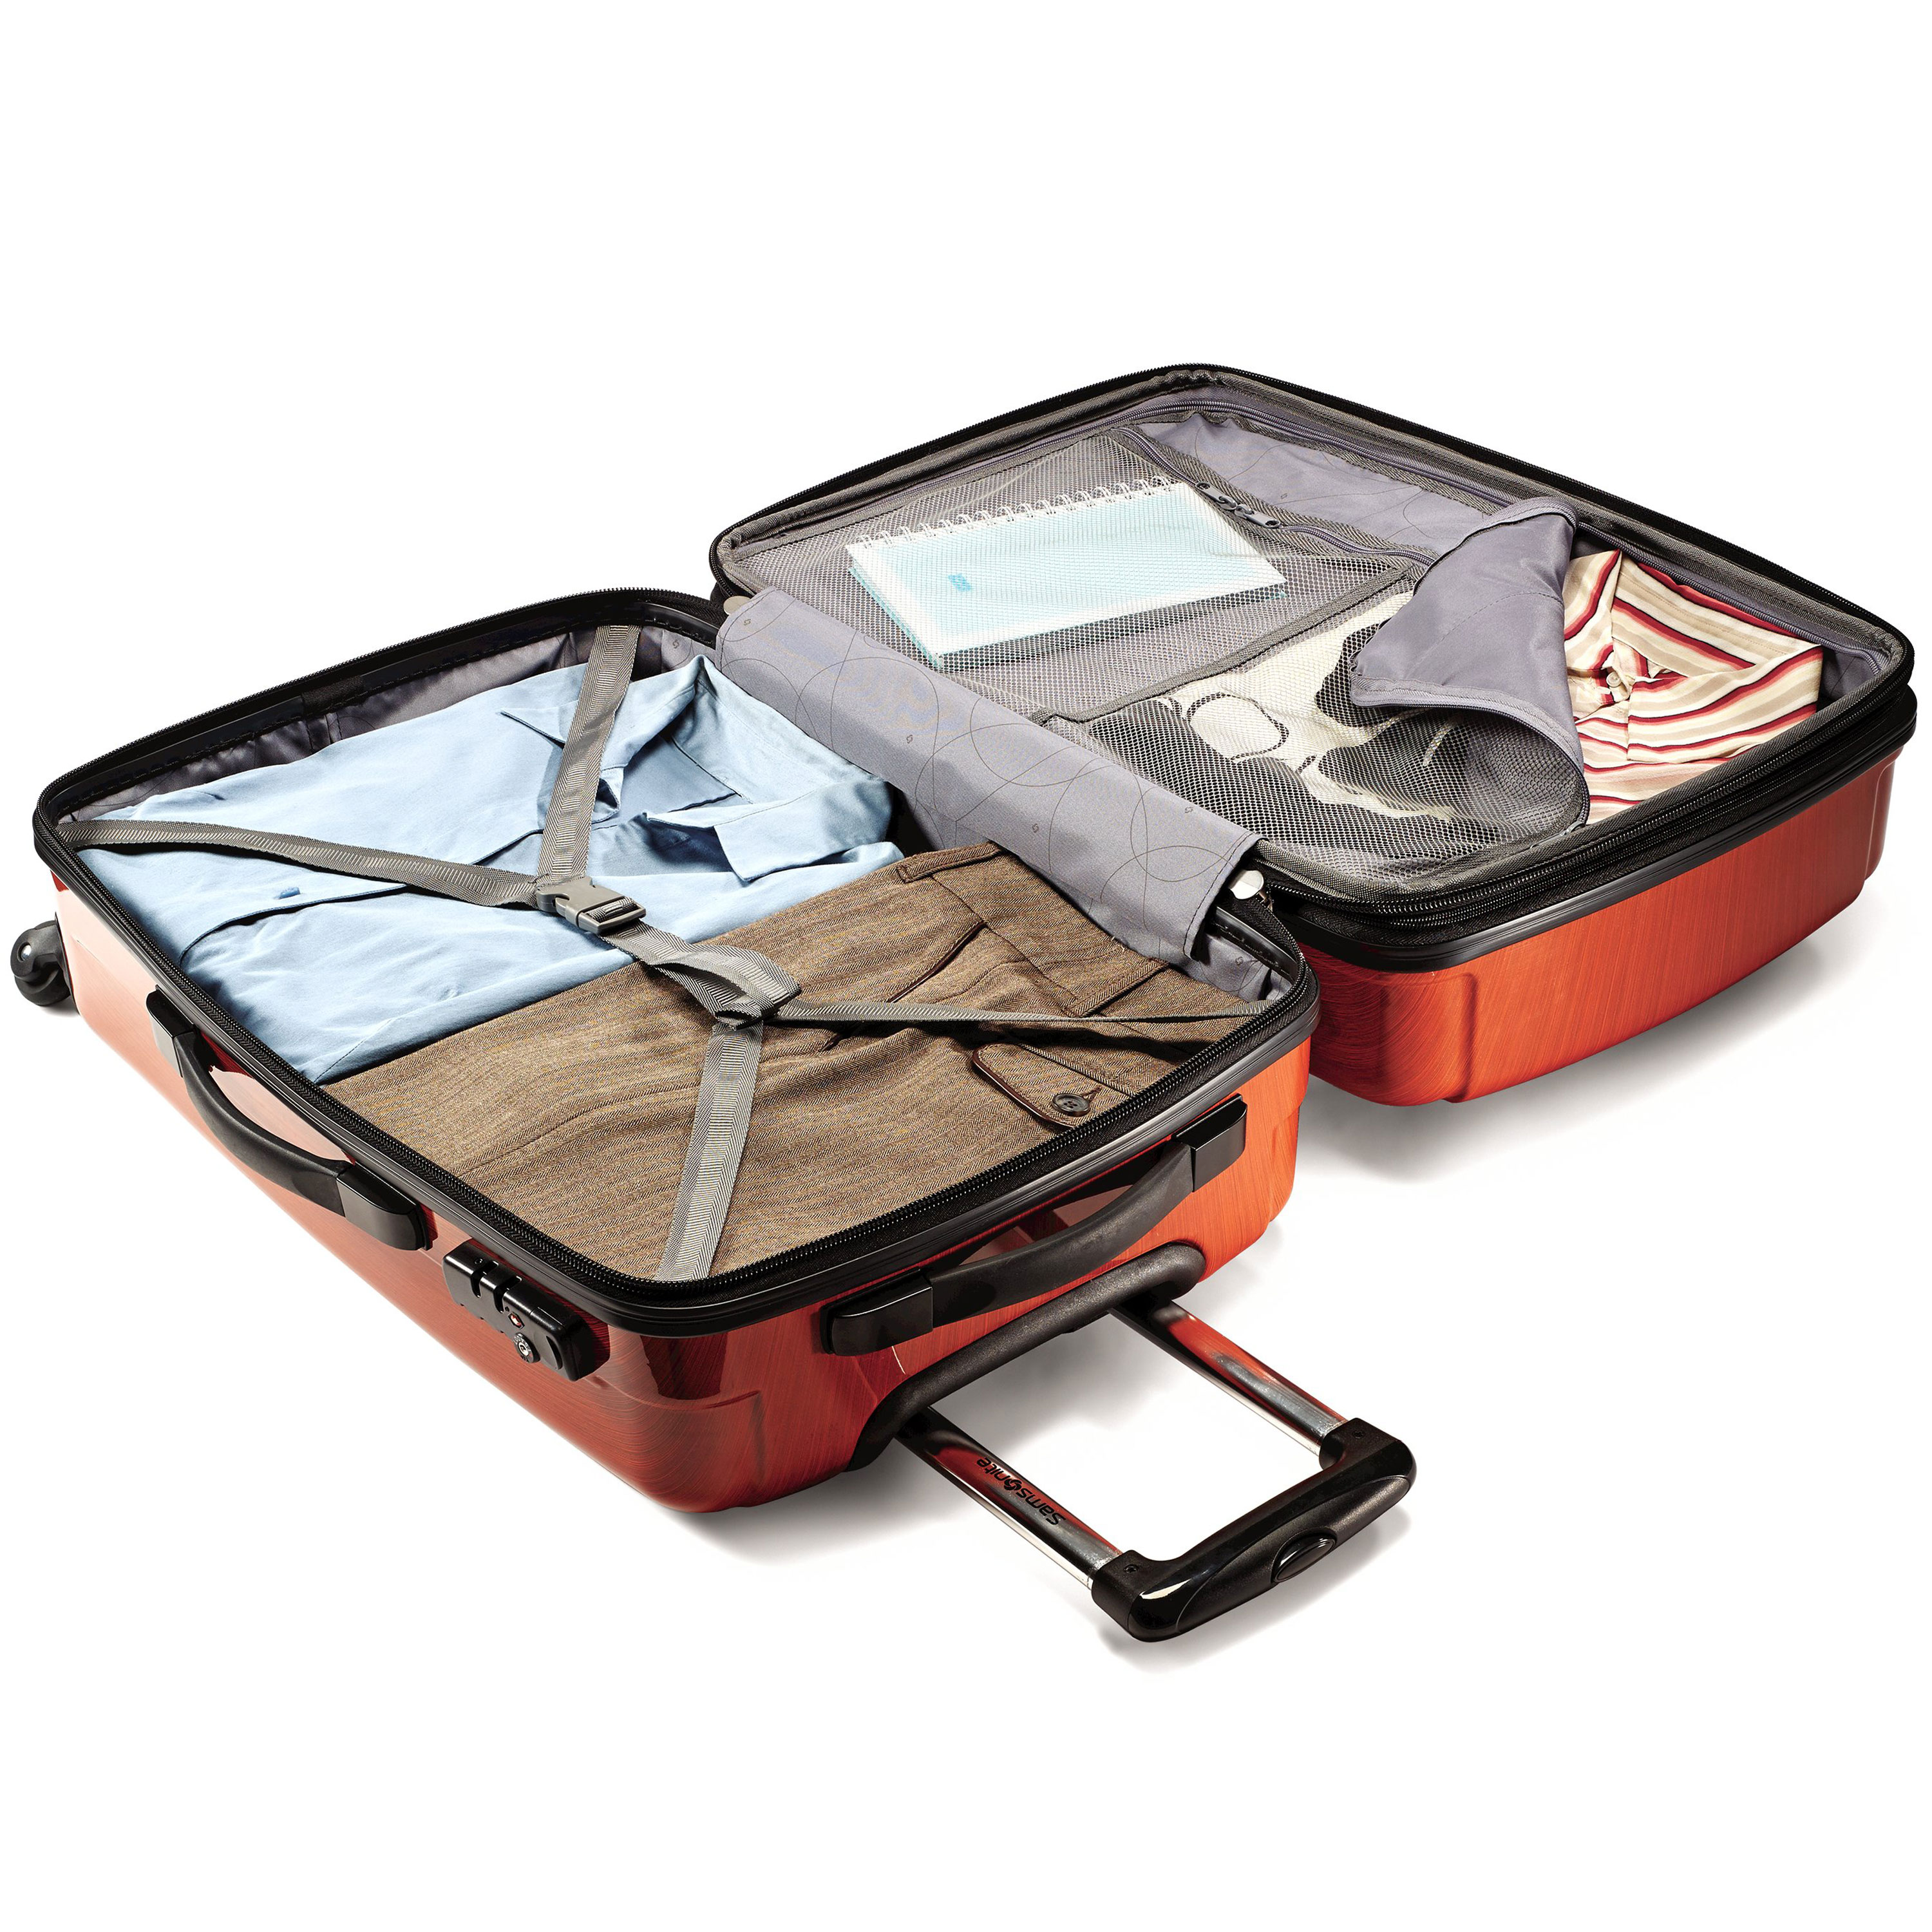 Samsonite-Winfield-2-Fashion-Spinner-Luggage thumbnail 34